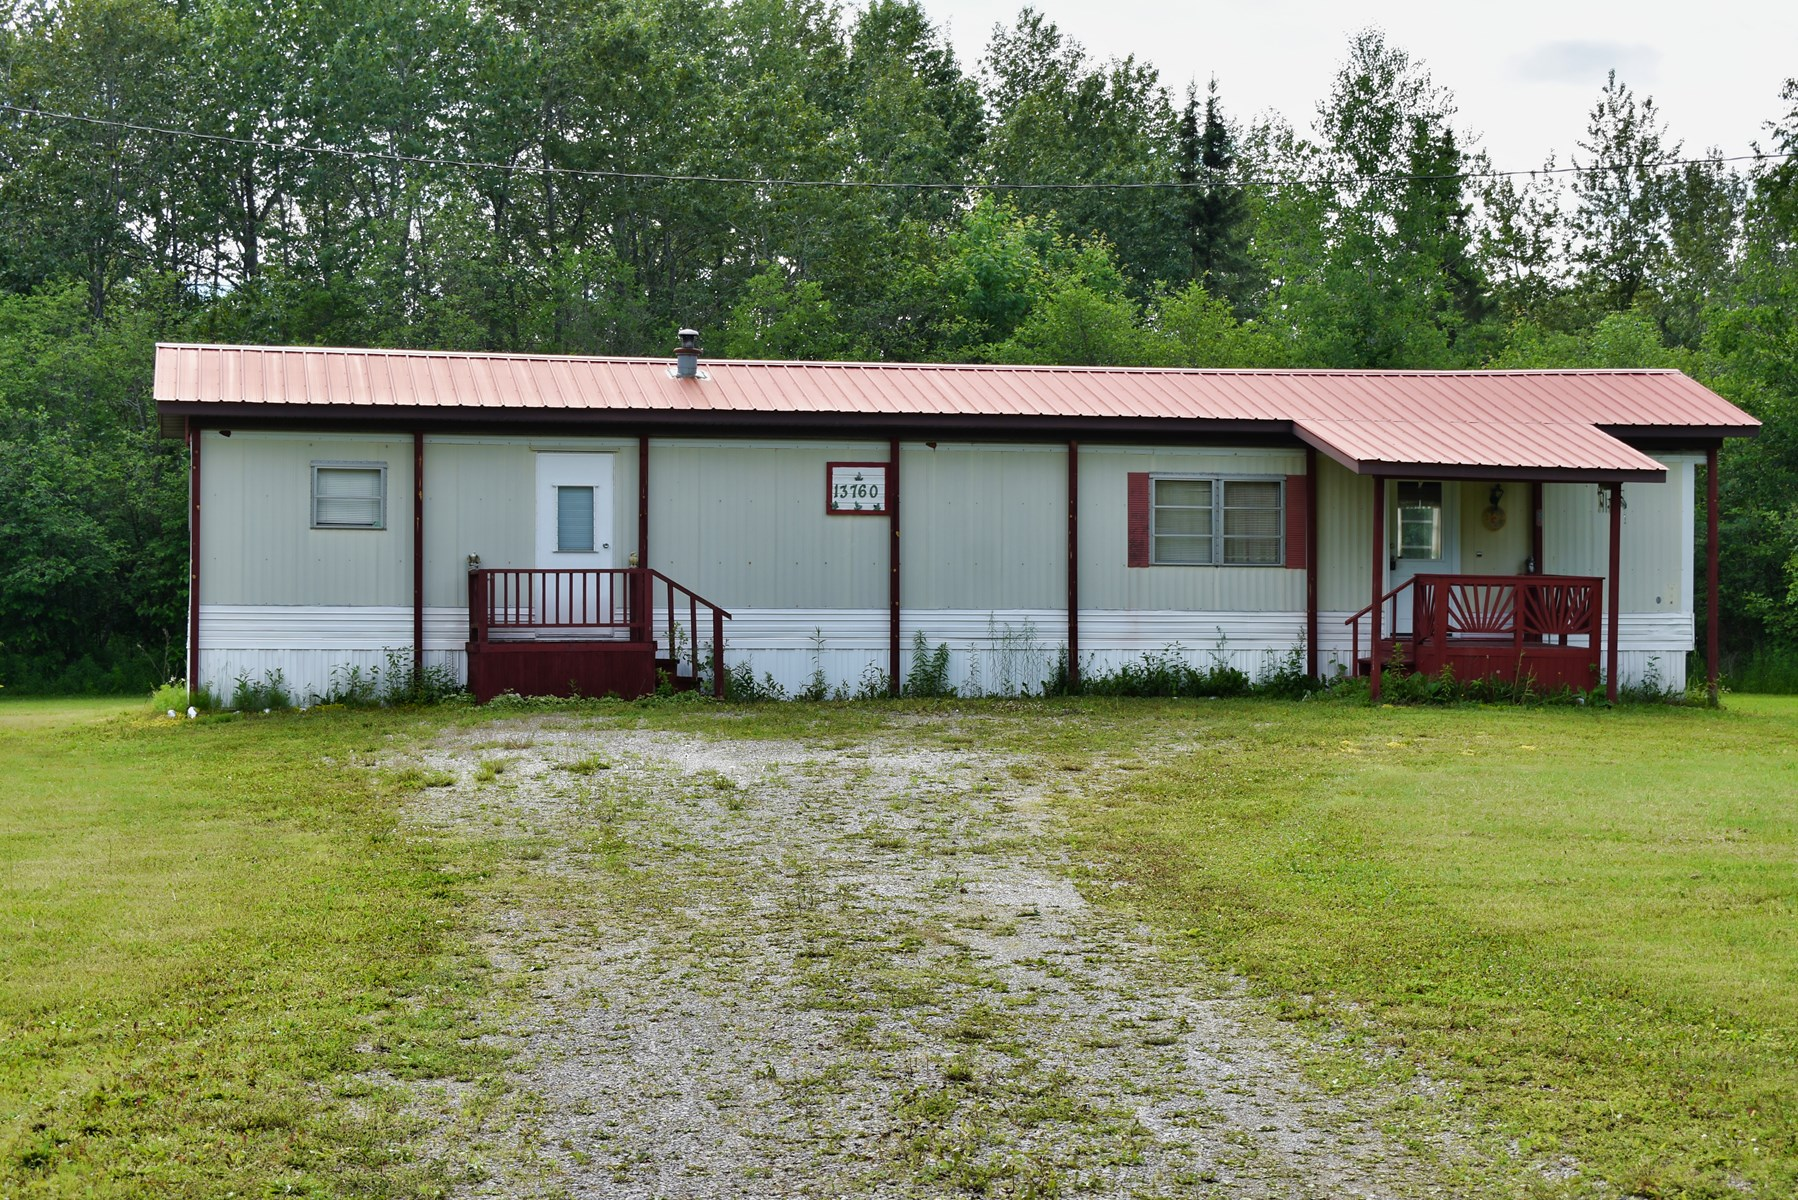 Posen, MI 40 acres Hunting Property w/ Mobile Home For Sale